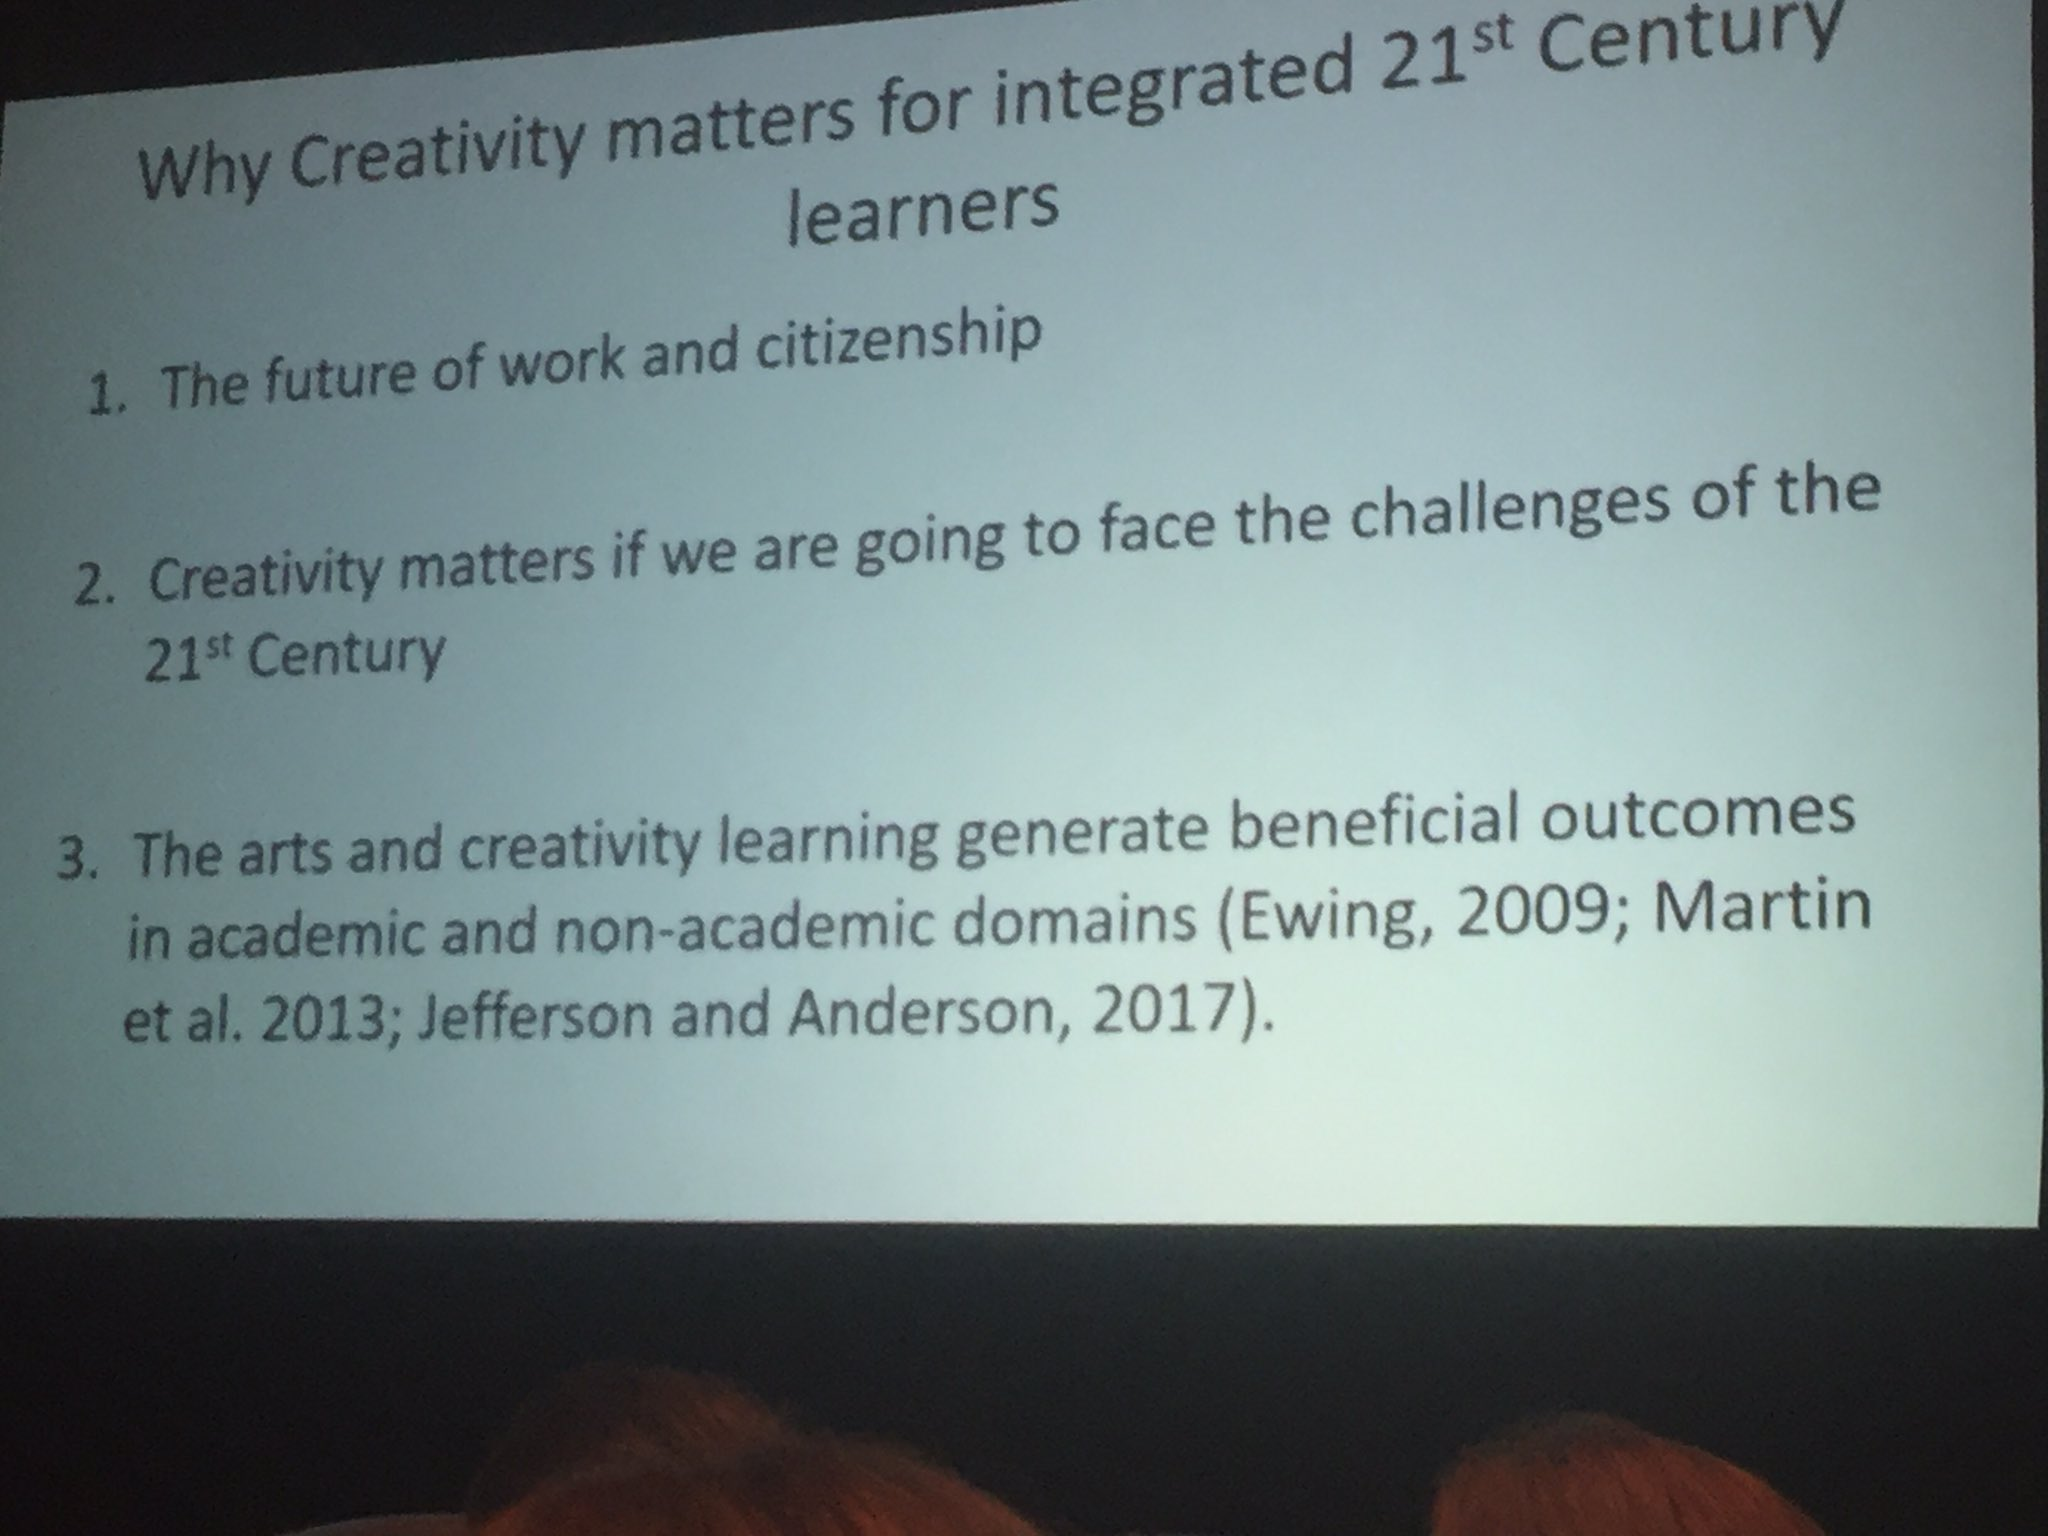 Why creativity matters for integrated 21st C learners - slide from Michael Anderson  #acsasym https://t.co/6sSoHVuNuh